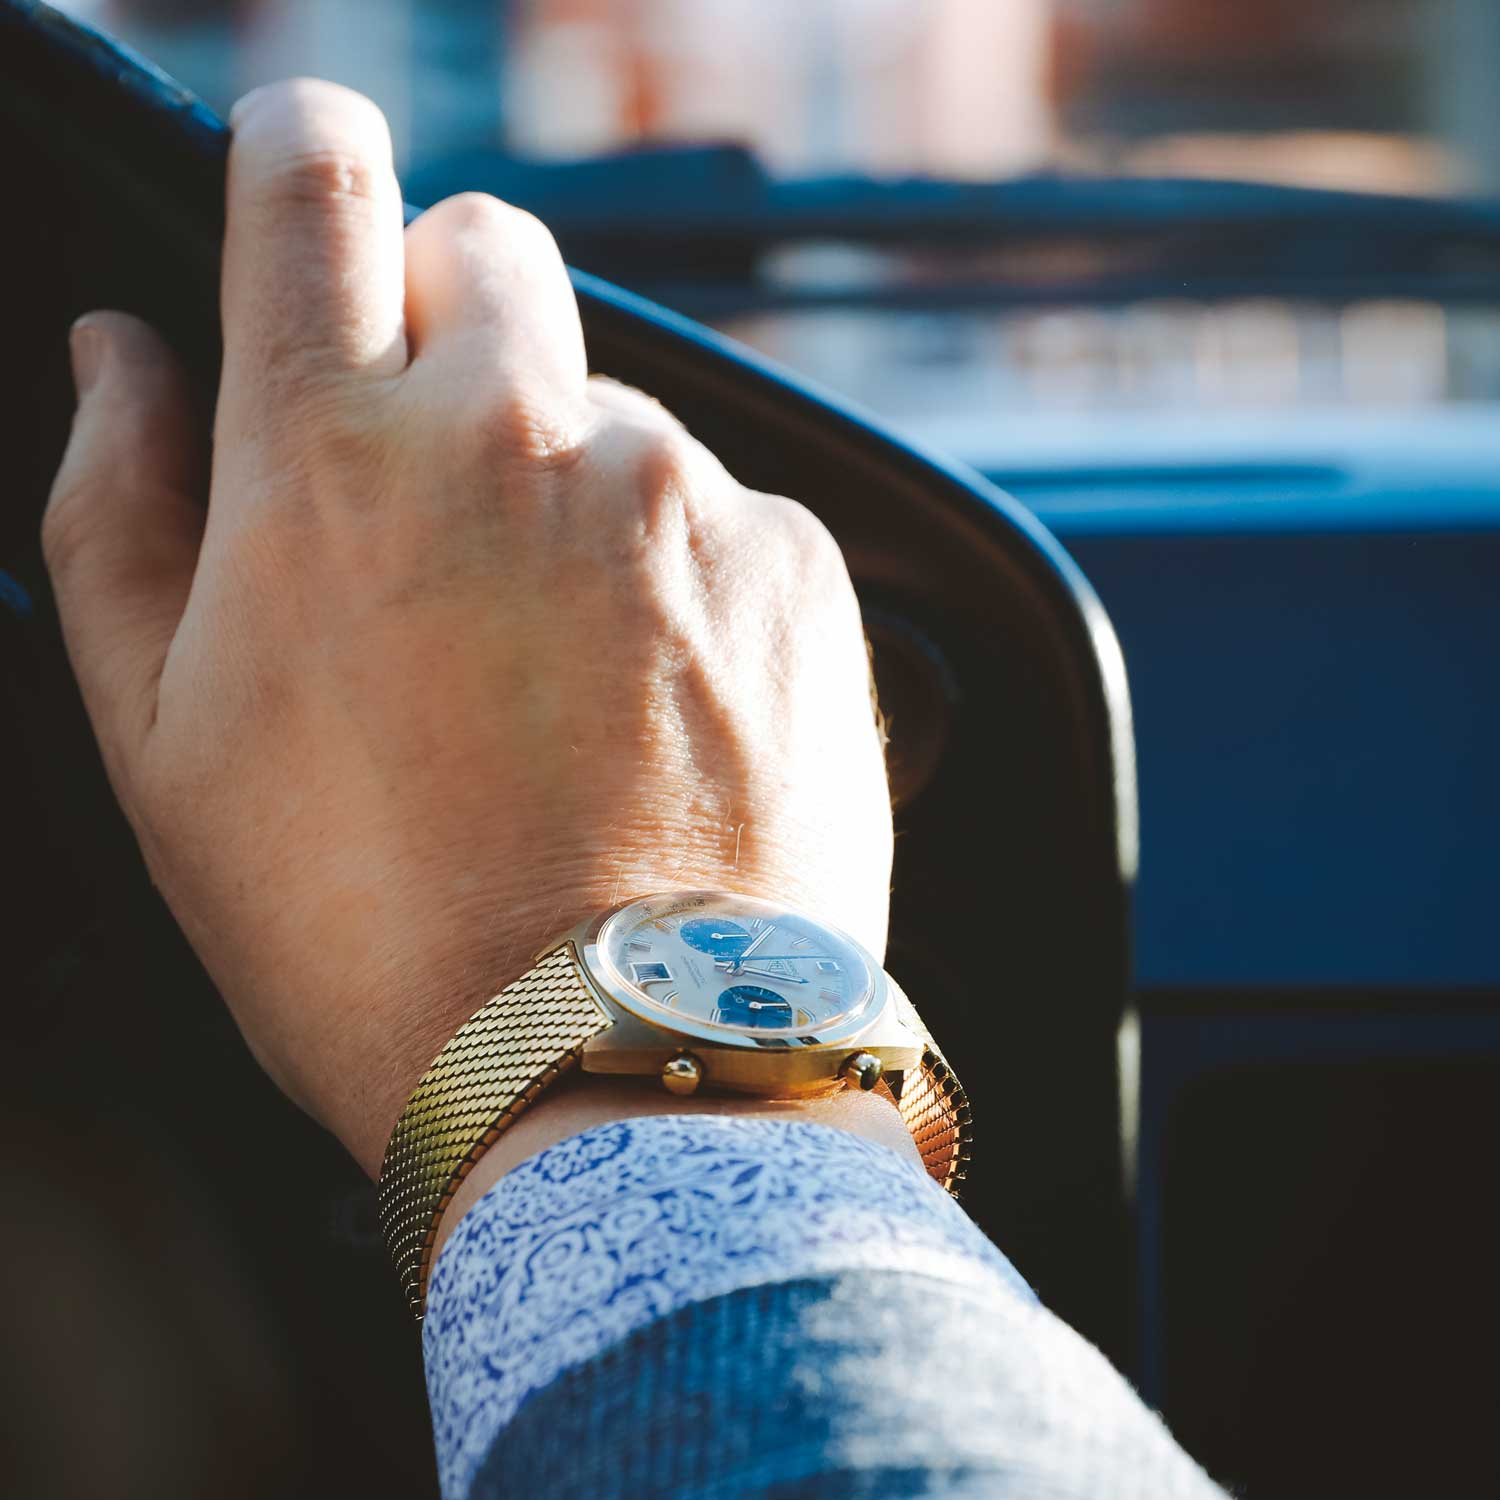 Haslinger was already passionate about cars before he got hooked on watches. Seen here on Haslinger's wrist is the Heuer Carrera 1158 CHN on gold band.